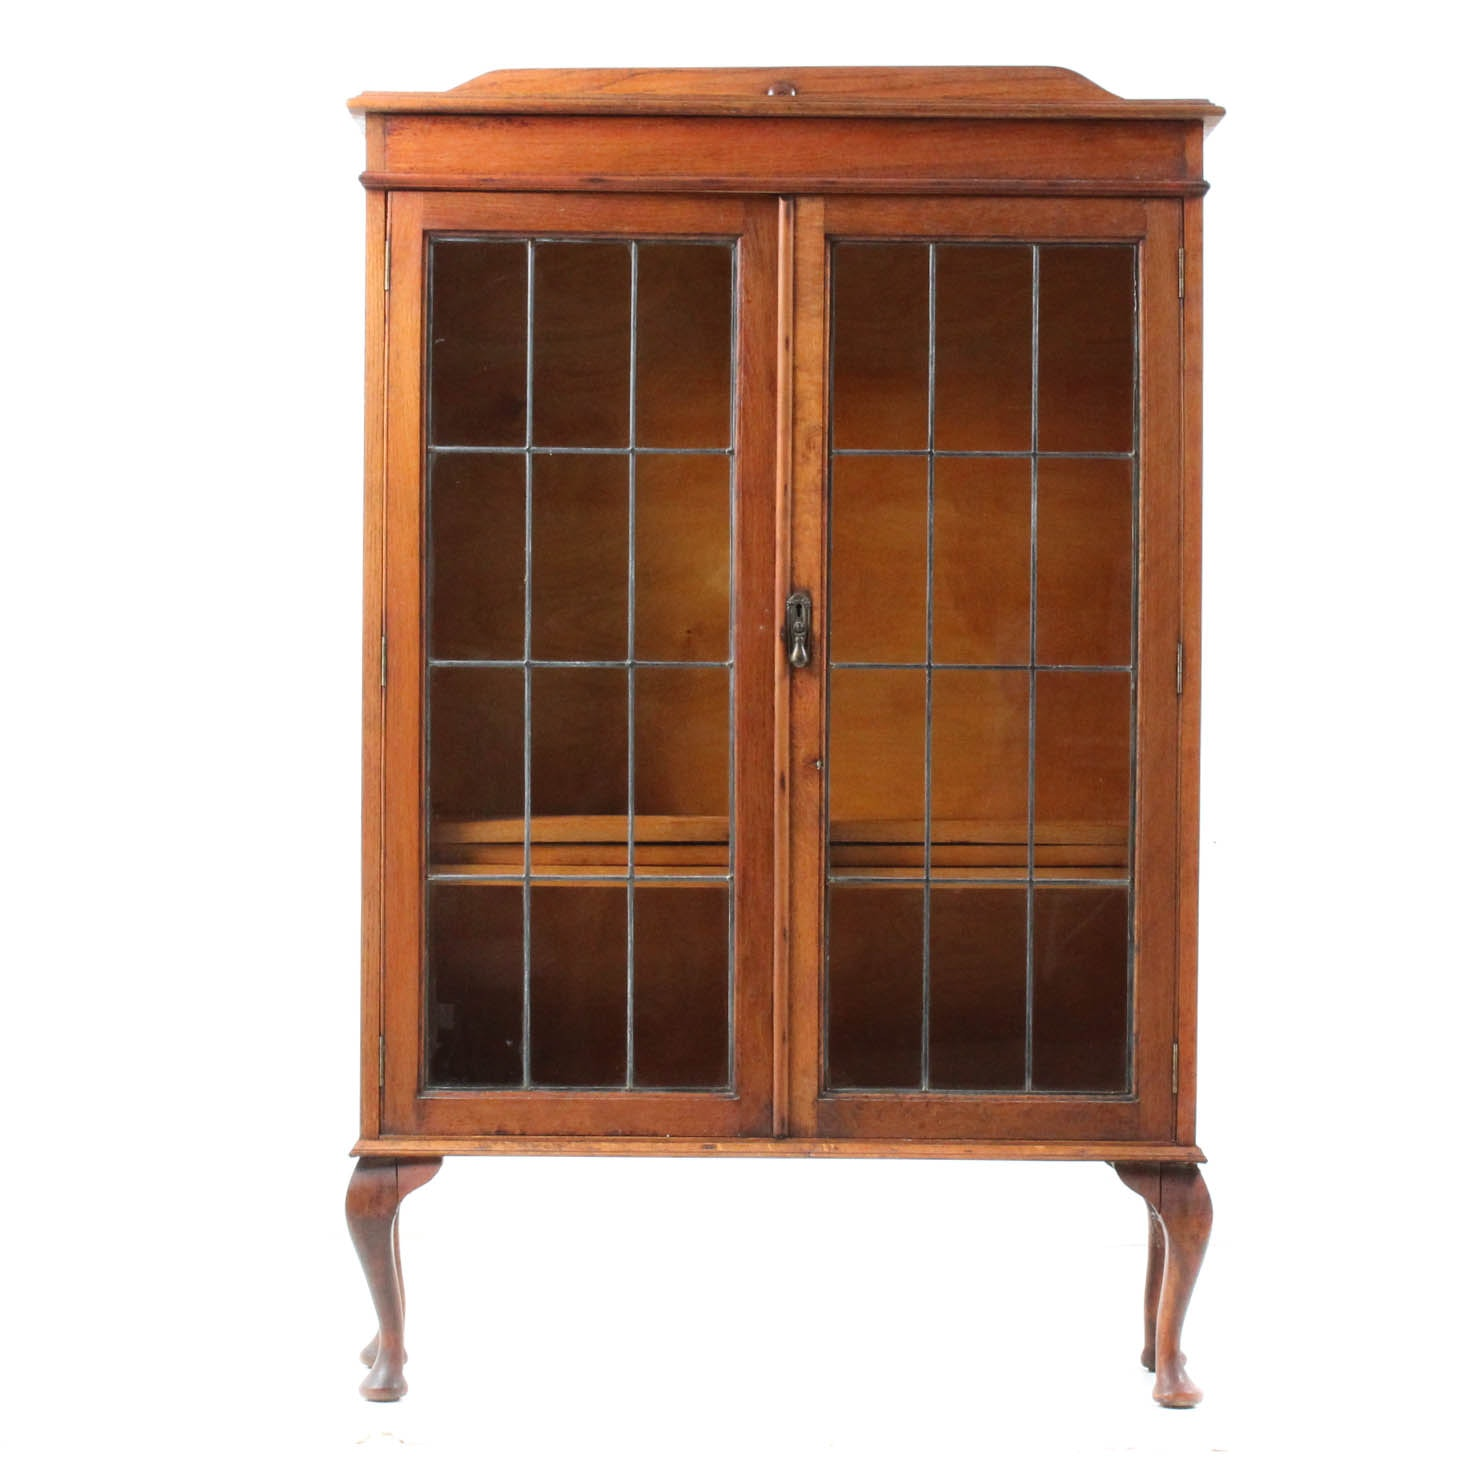 Antique Wooden Display Cabinet with Leaded Glass Doors